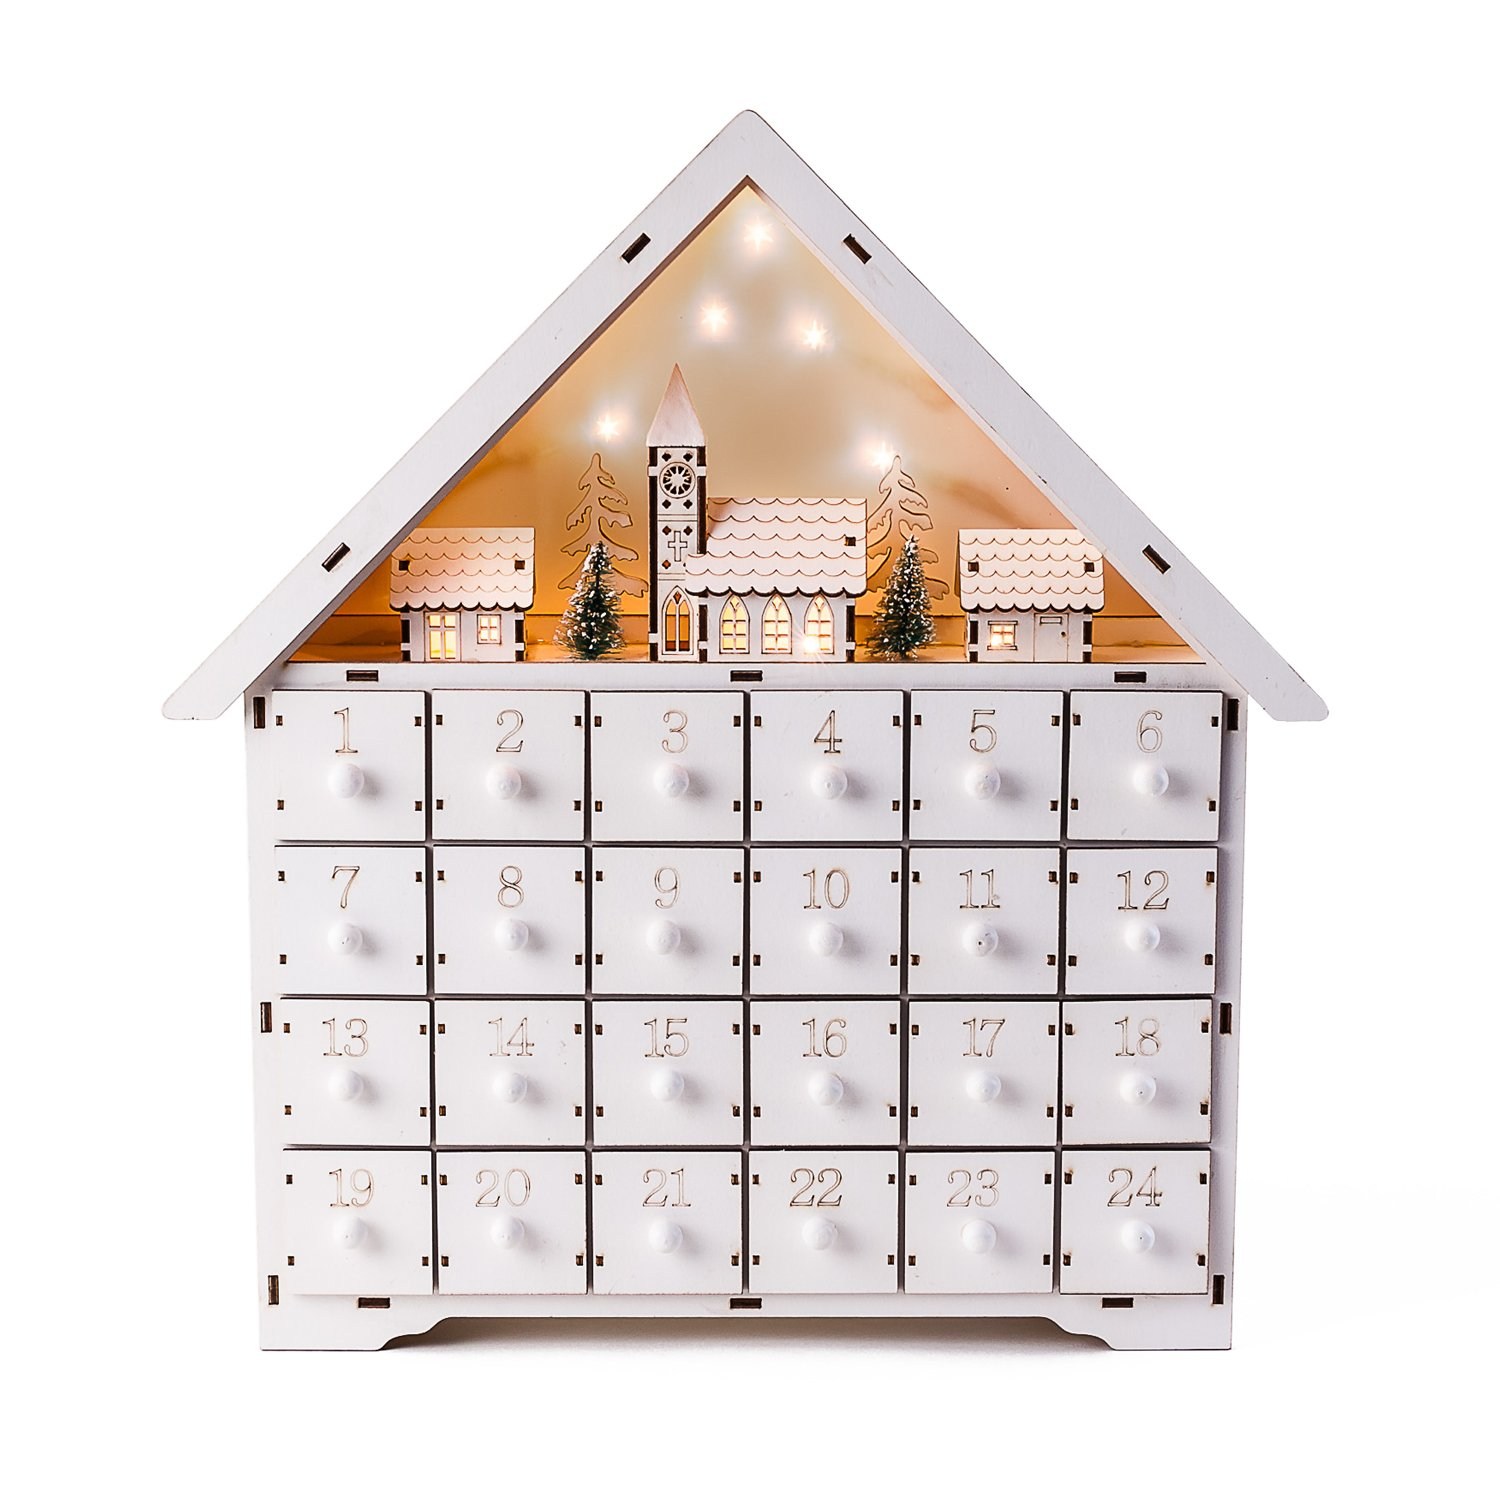 Christmas Wood White Alpine House Lighted Scene Advent Calender w/Drawers by 180 Degrees